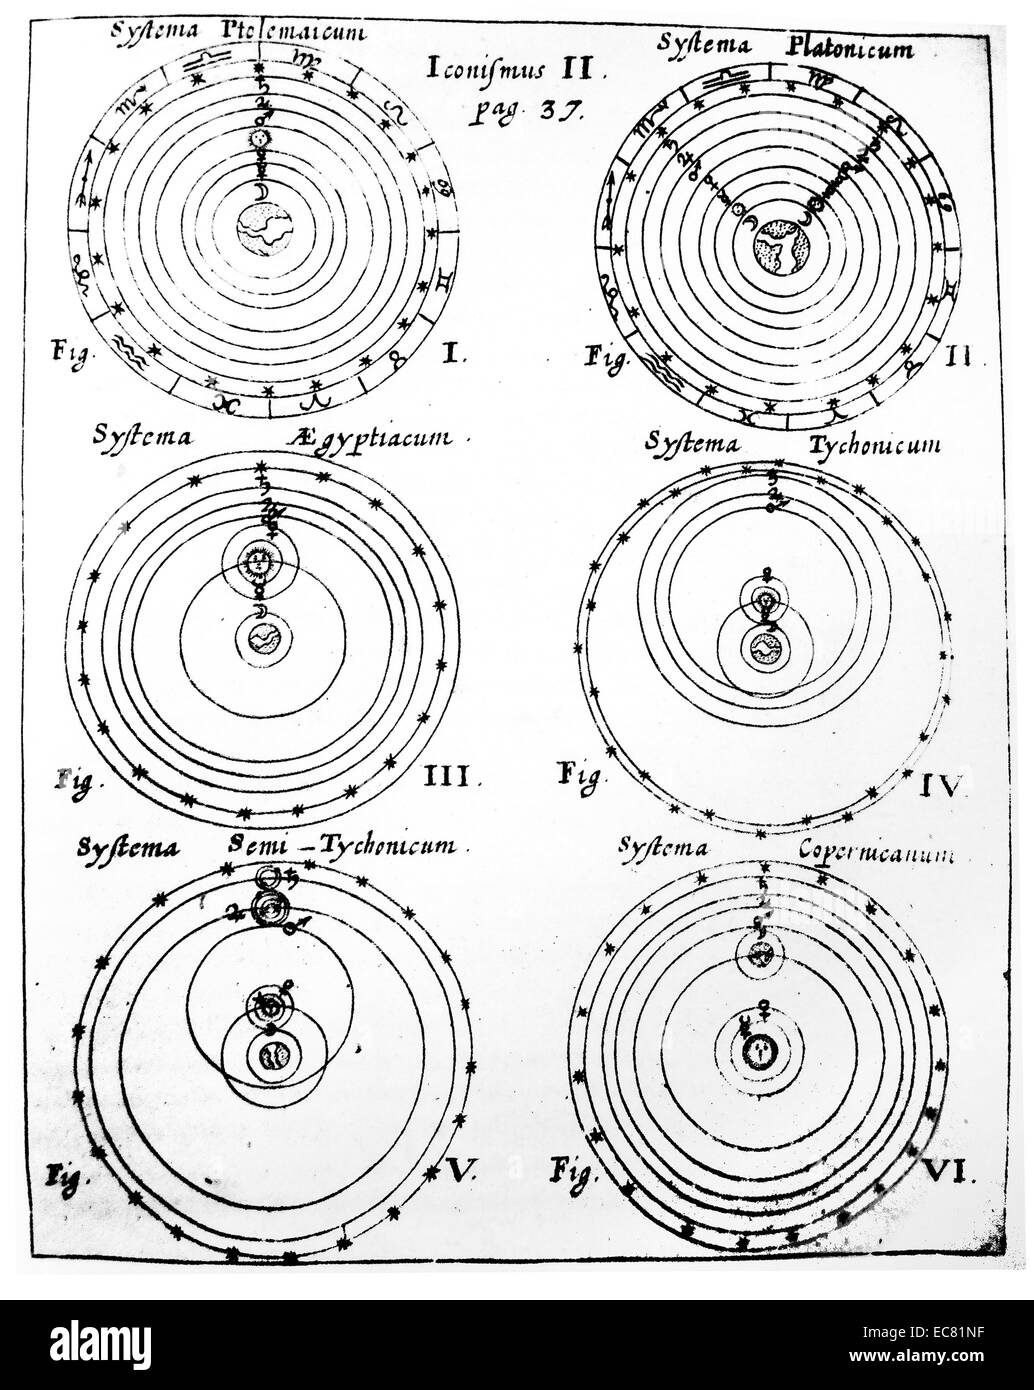 Cosmic Systems from Ptolemy to Copernicus. Dated 18th Century - Stock Image